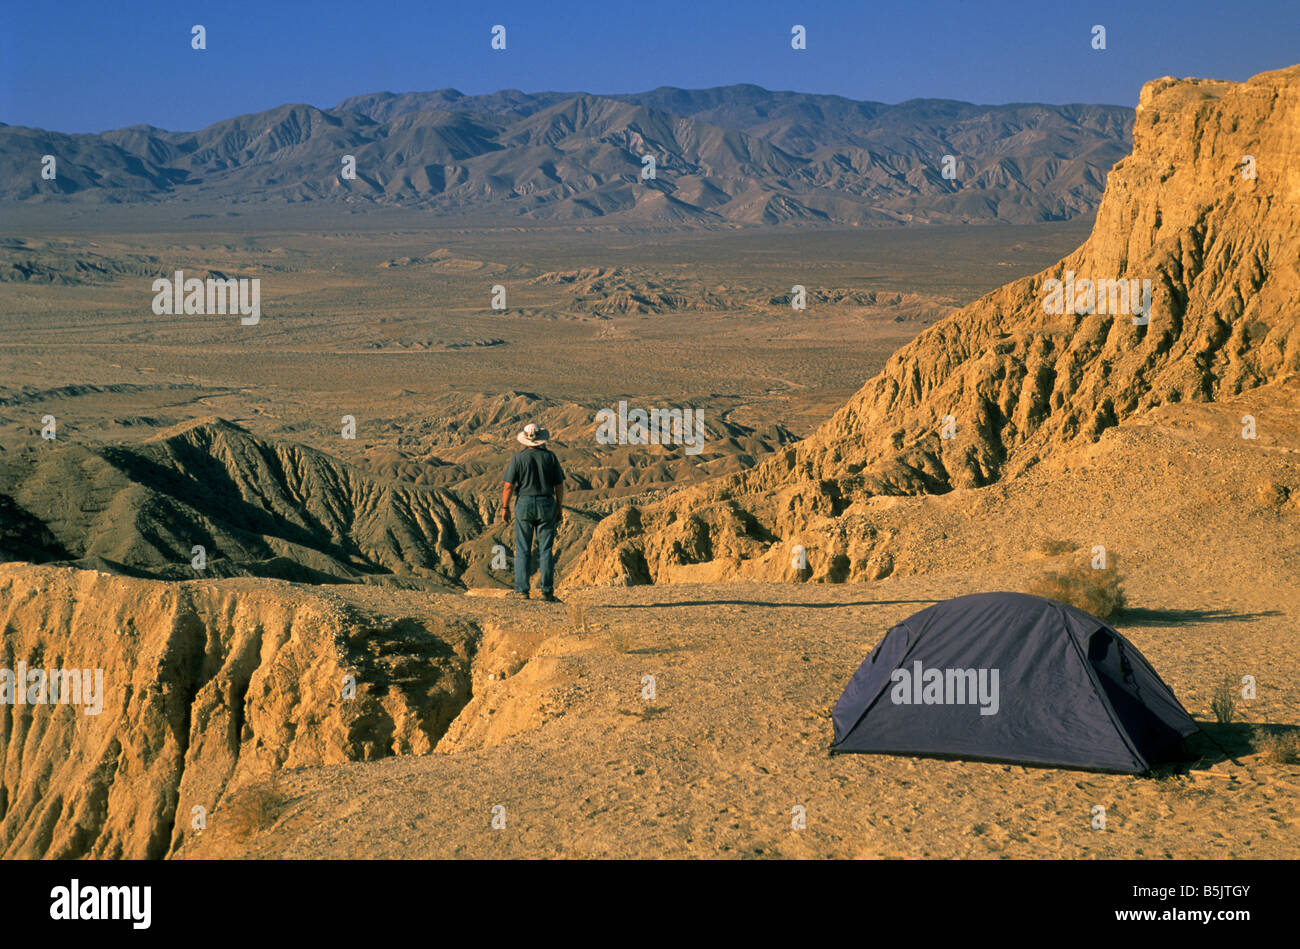 Hiker camping at Fonts Point in Borrego Badlands at sunrise at Anza Borrego State Desert Park California USA - Stock Image